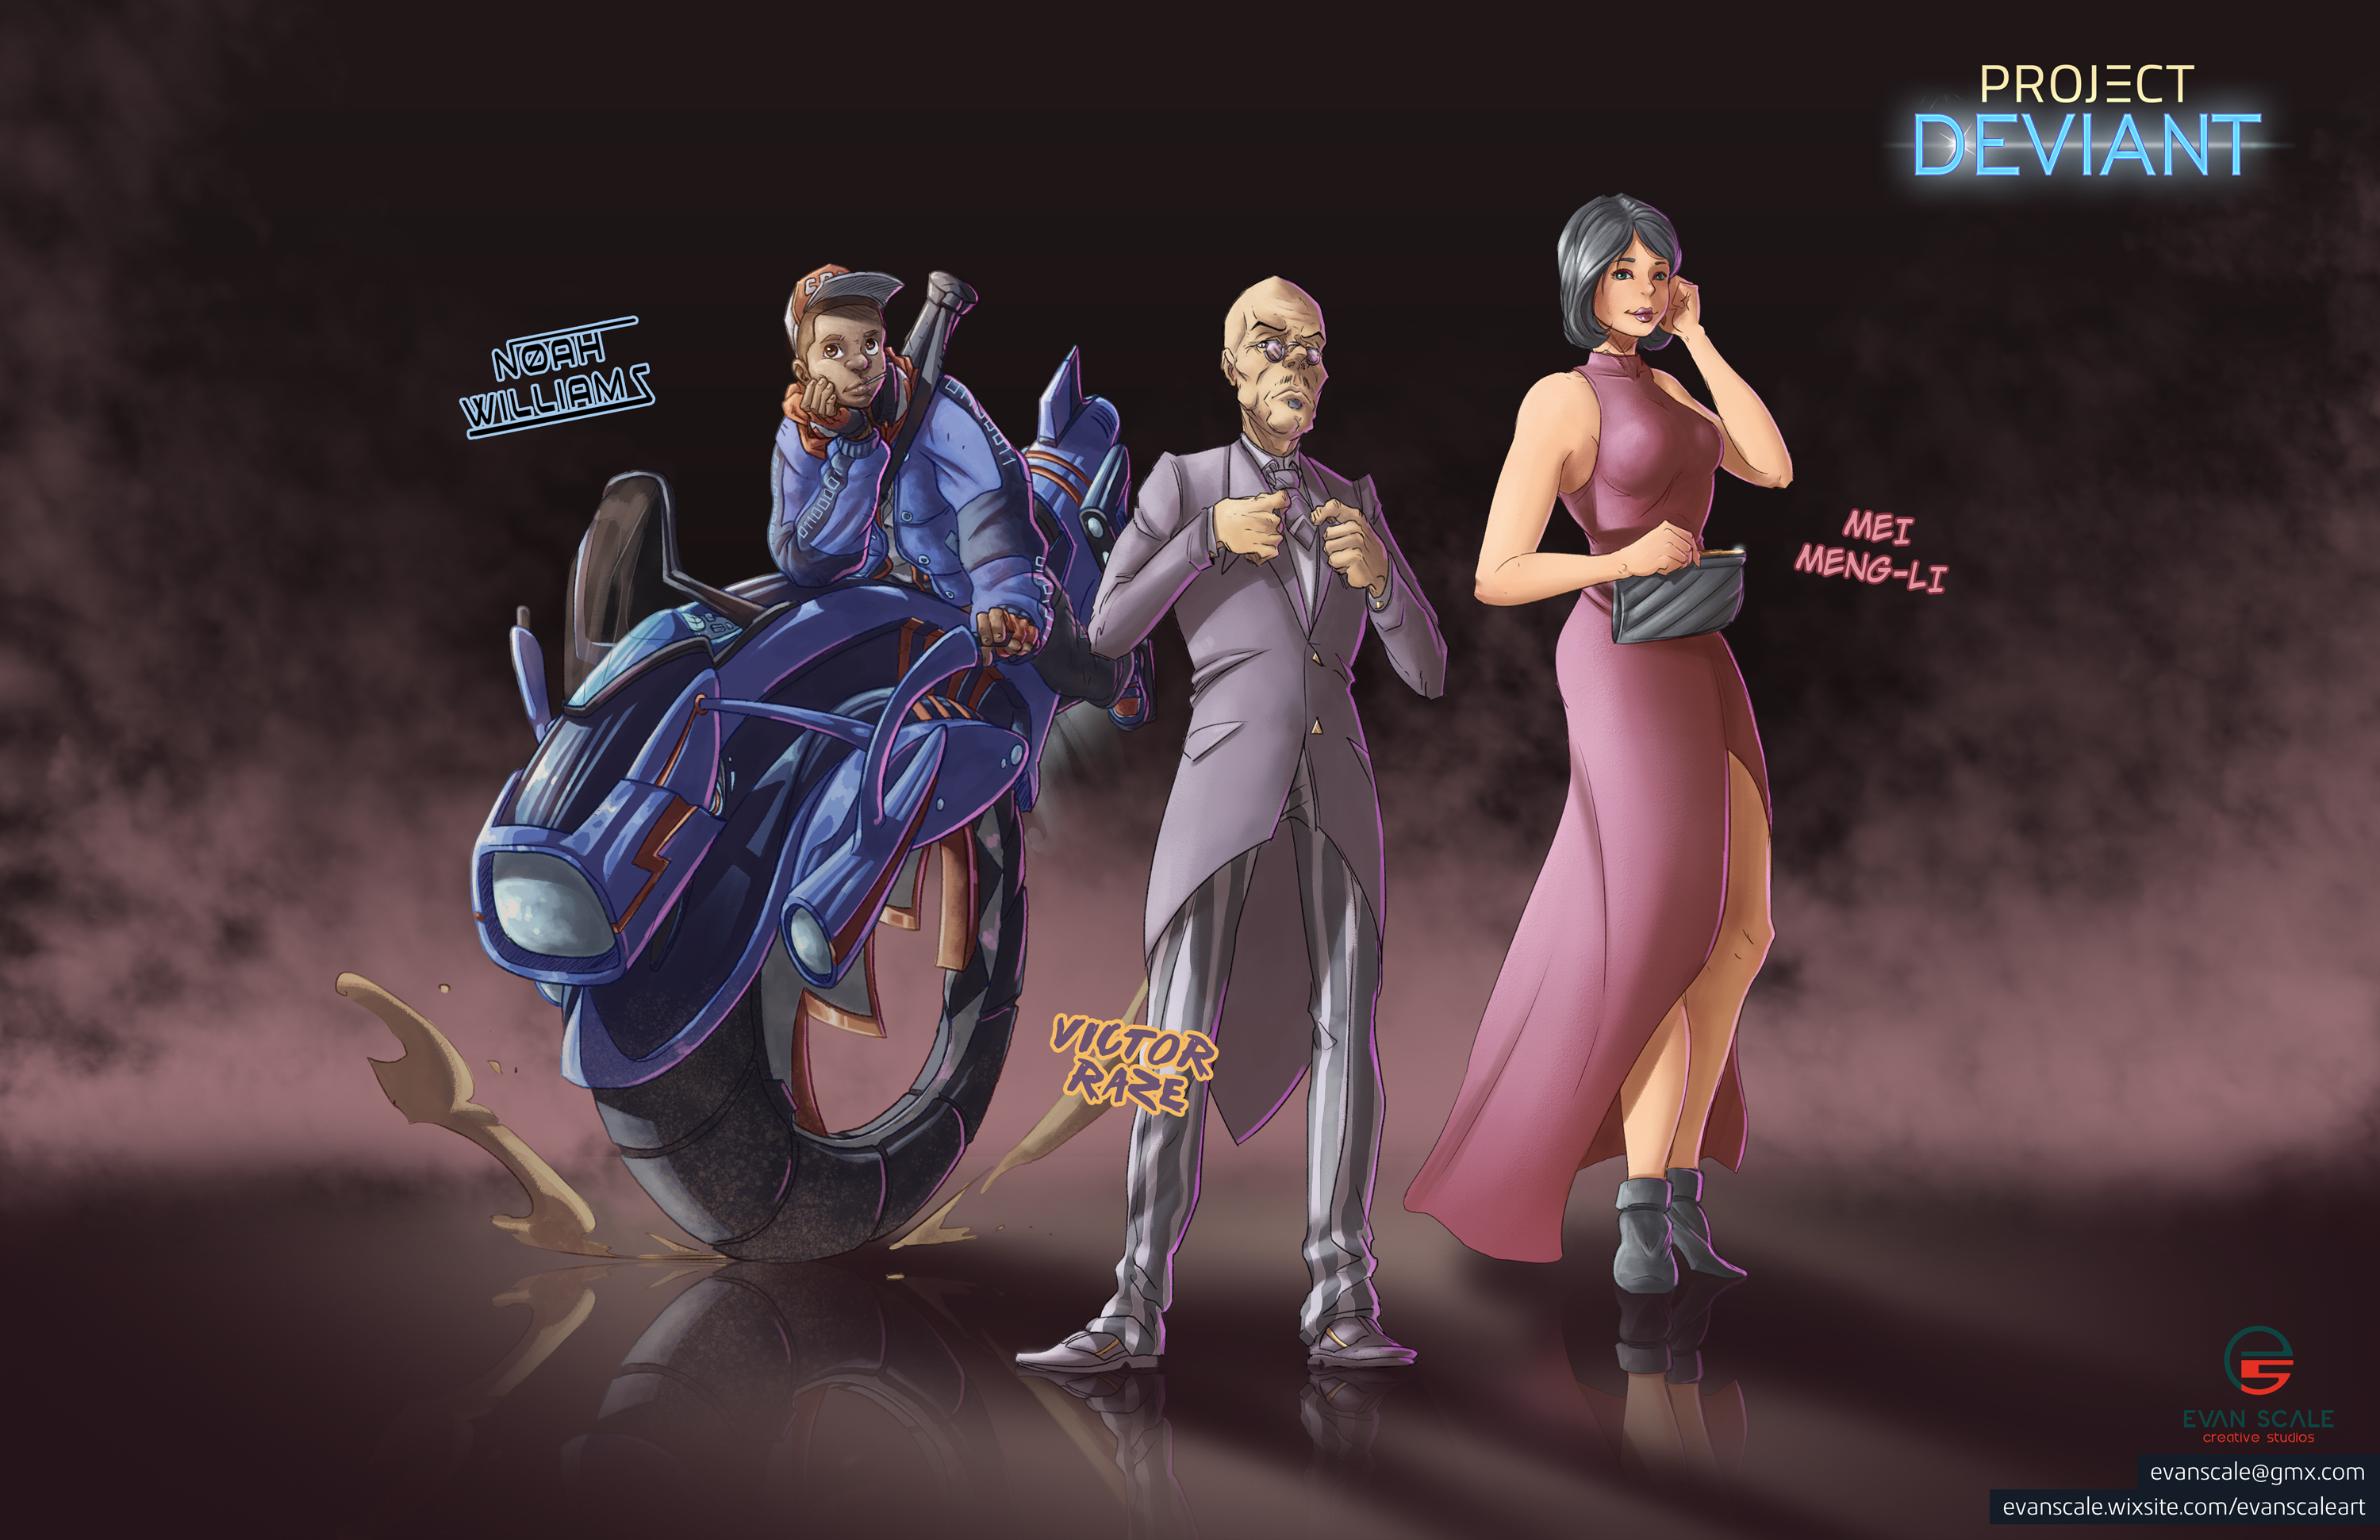 Project Deviant - Characters